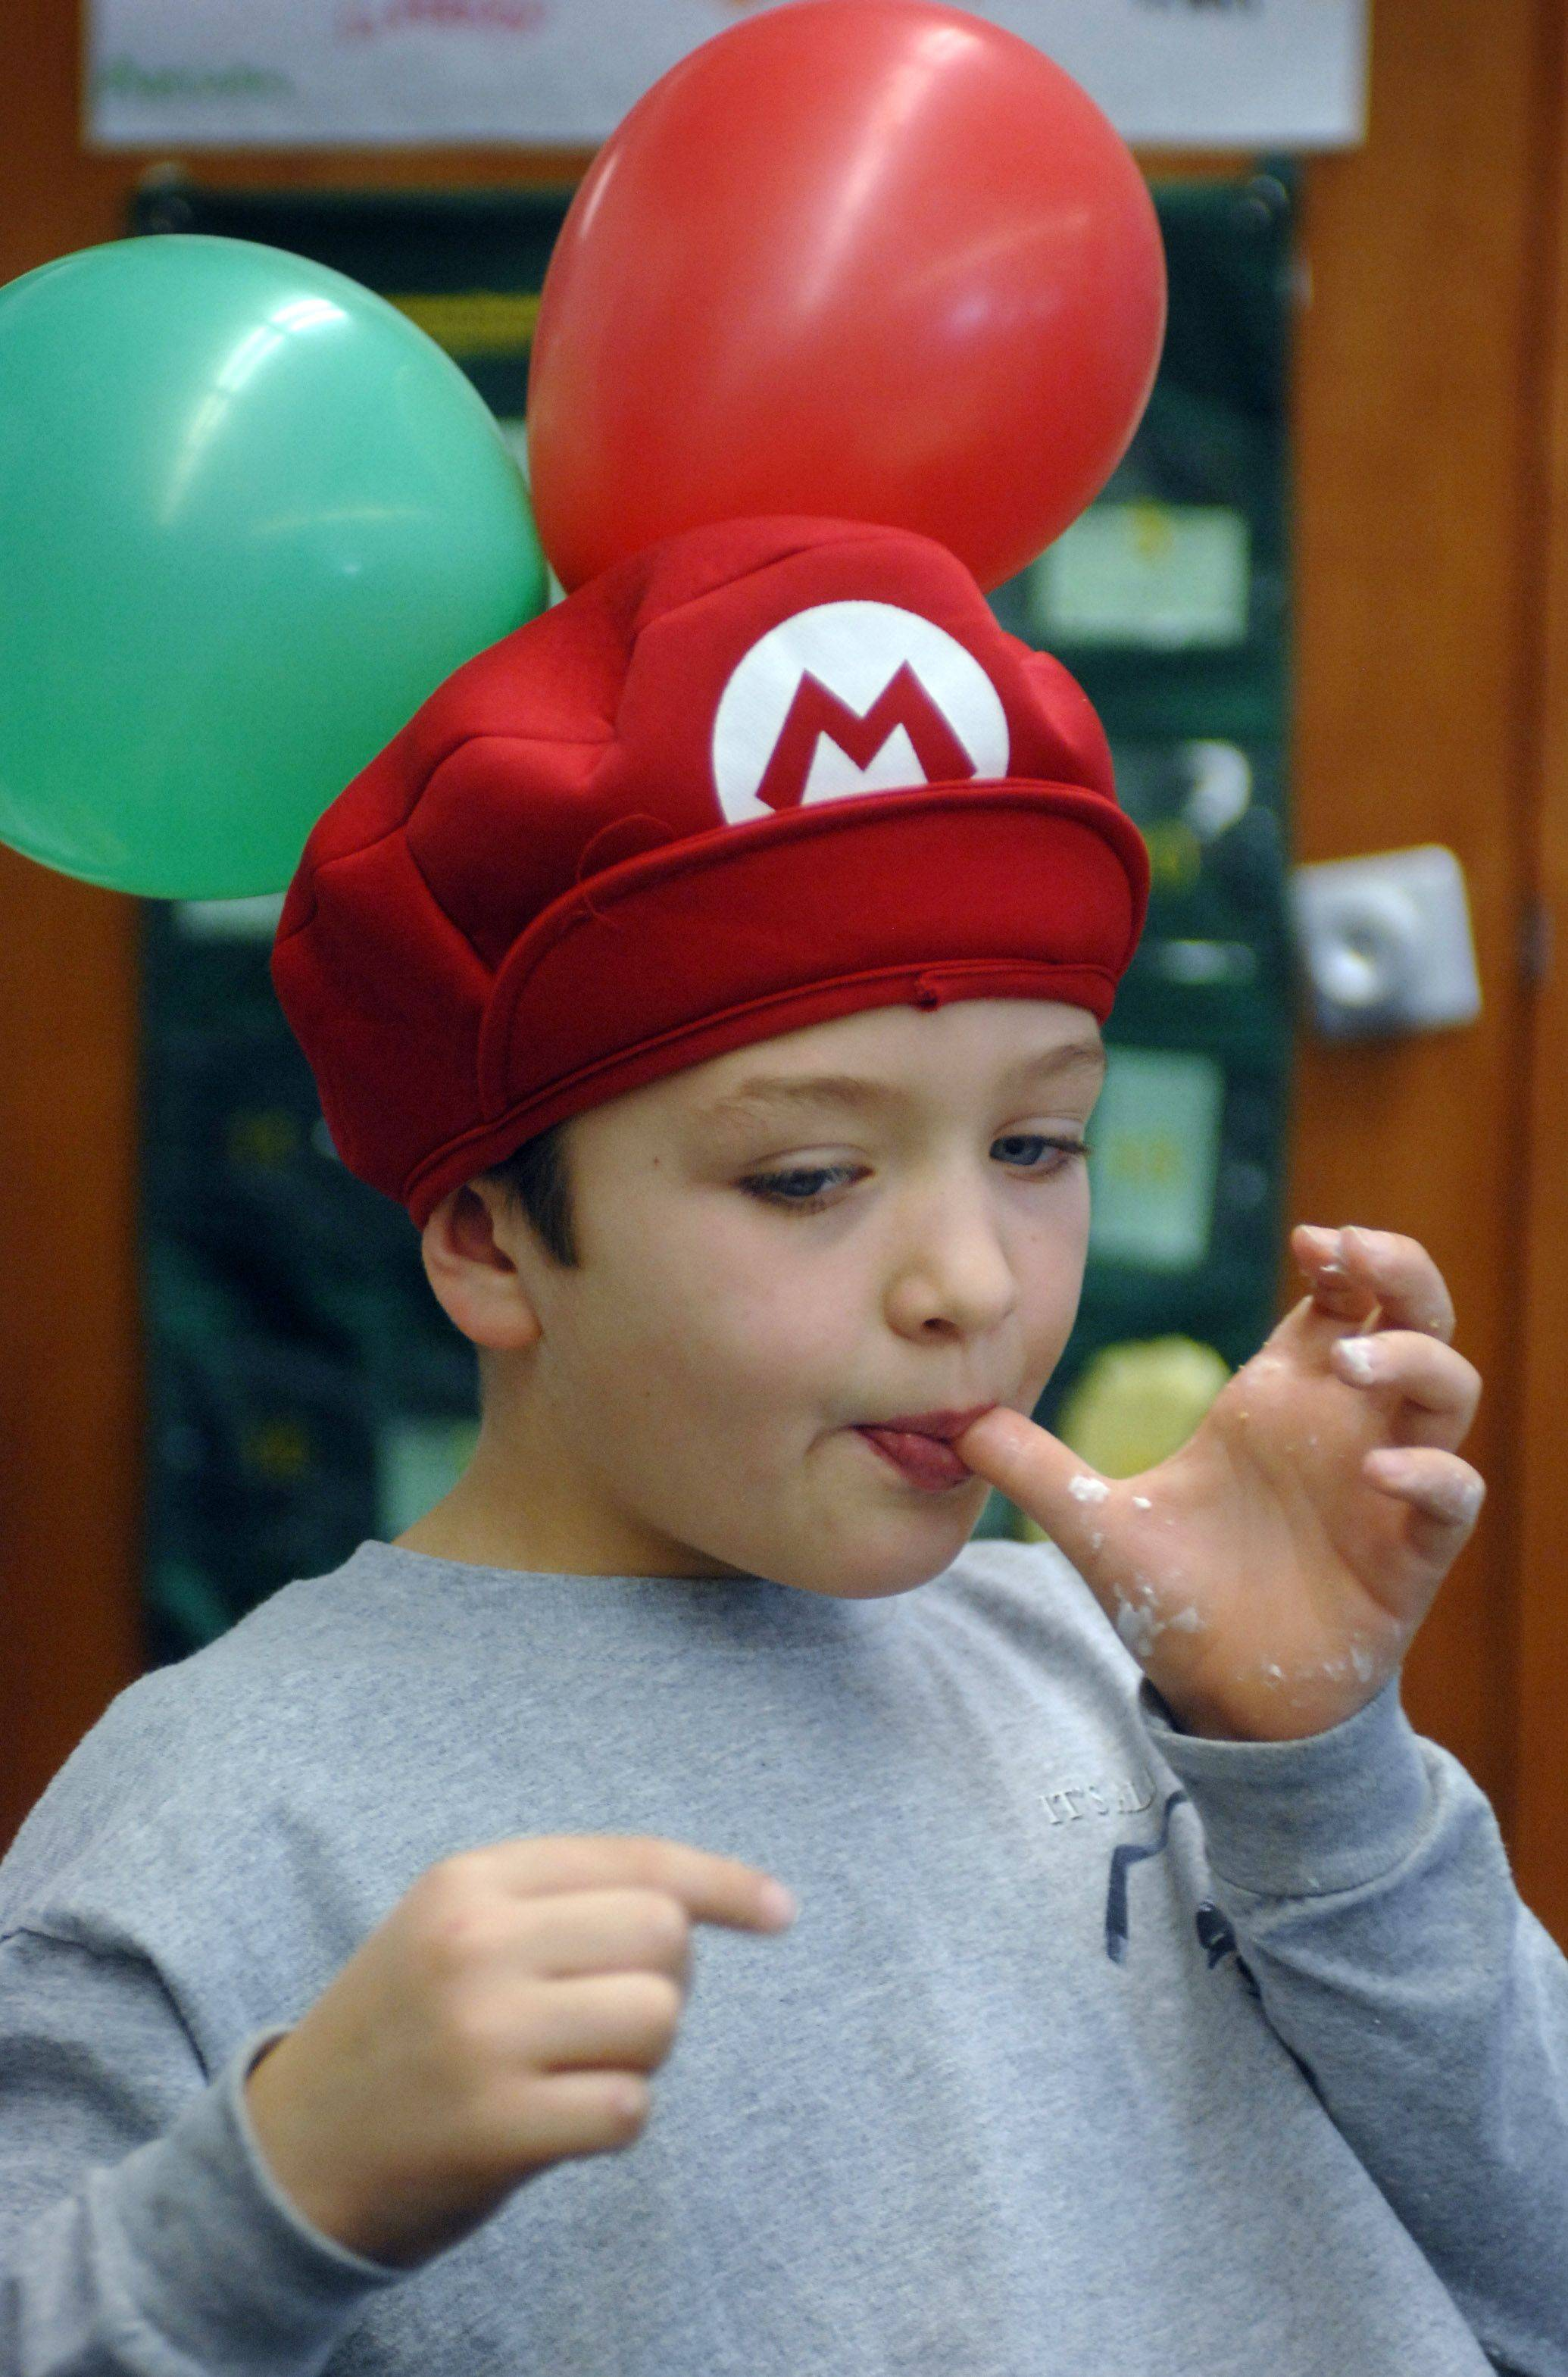 Adler Park School first-grade student Logan Hyatt takes a taste of frosting while he and fellow classmates made gingerbread houses Friday at the Libertyville school. First-grade students have been learning about winter holidays and reading gingerbread-themed books.